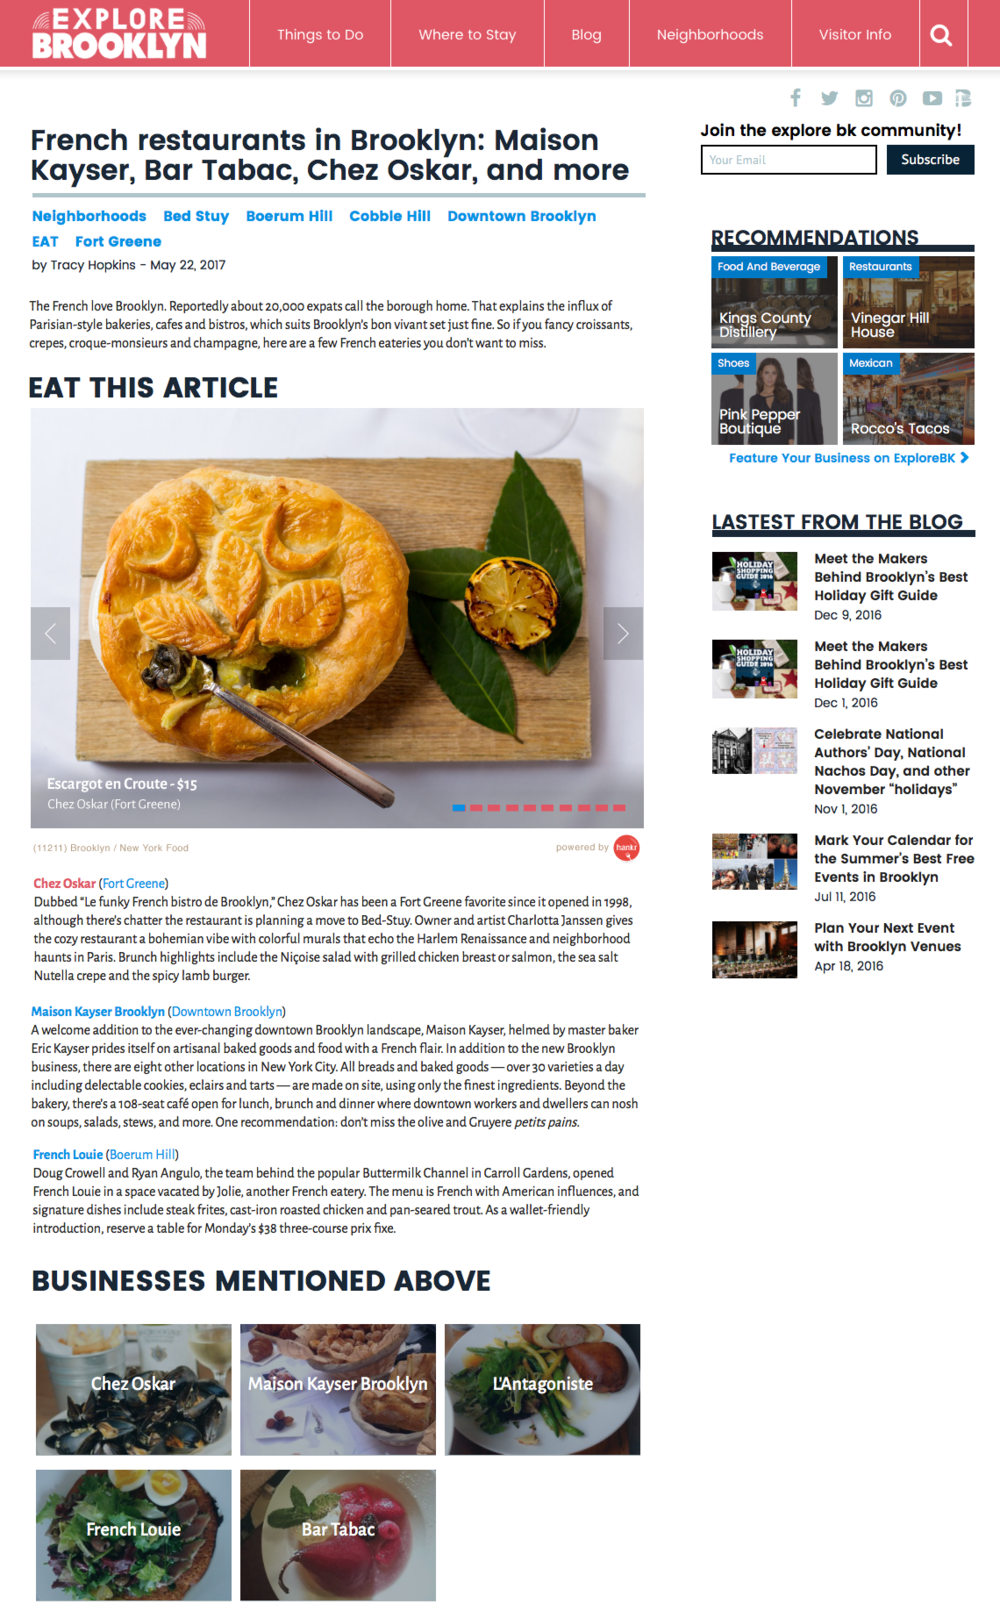 With hankr, you'll have detailed food content to pair with every inspiring article - without all the work.